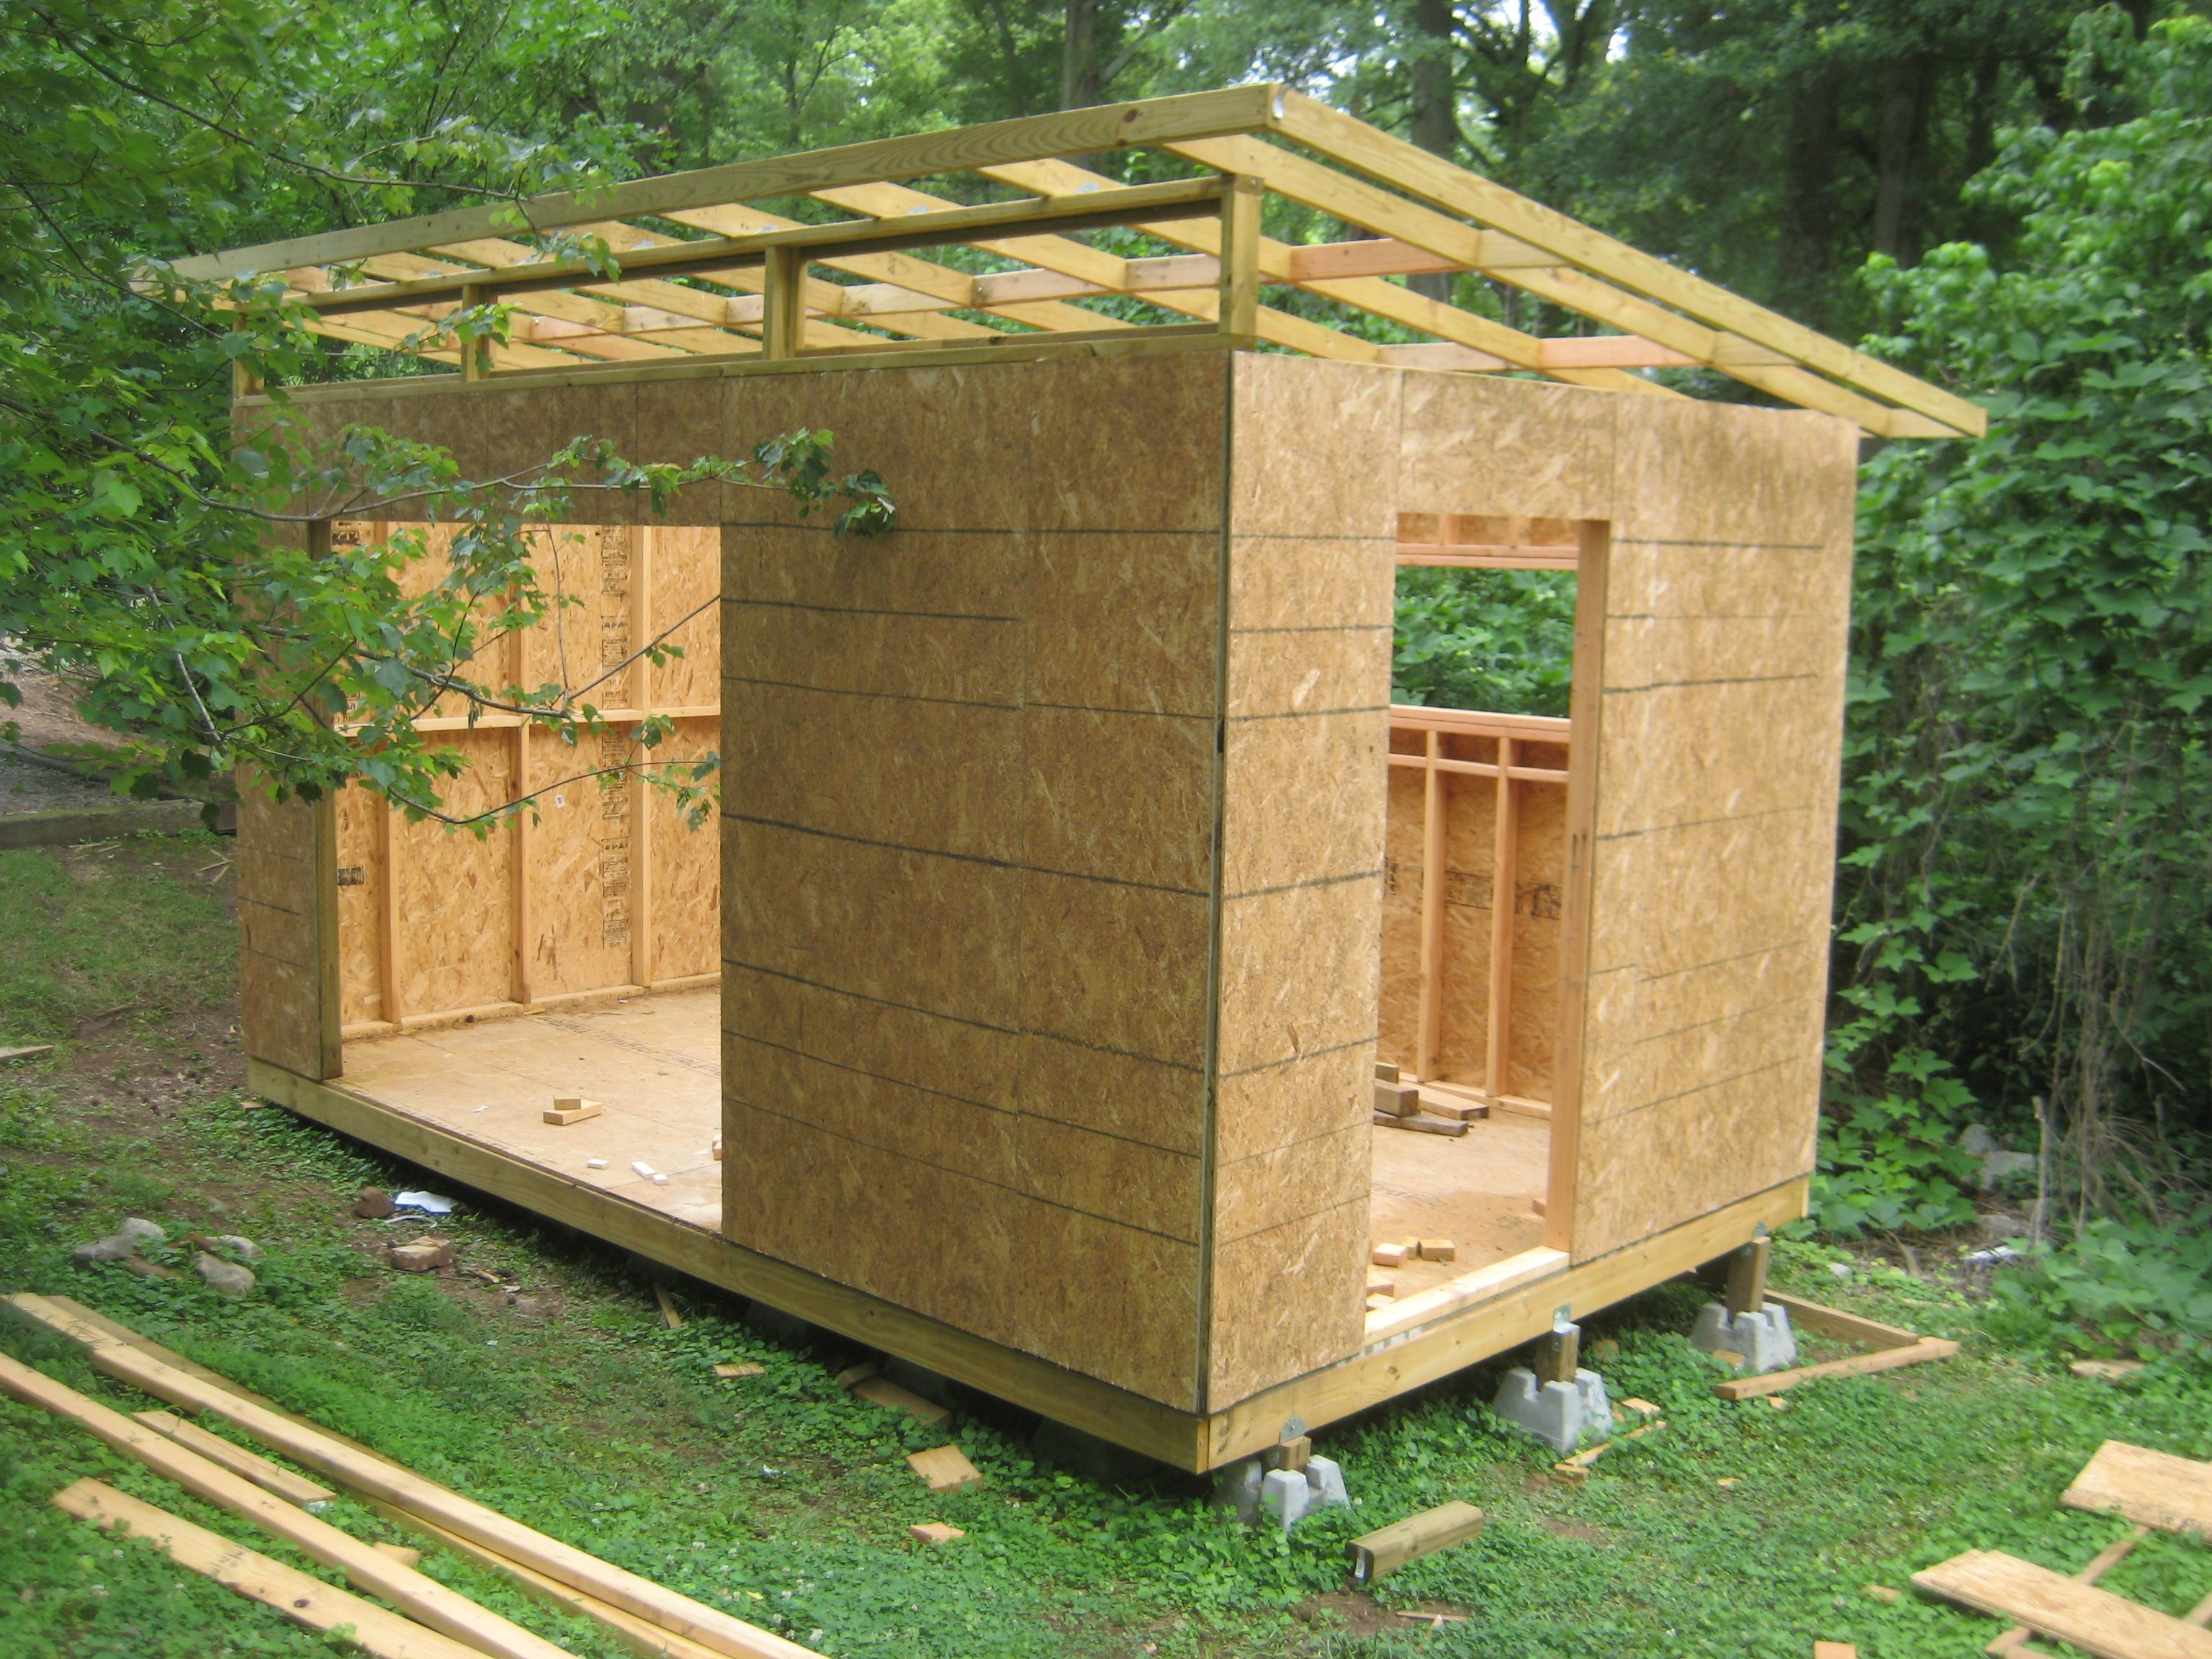 in kits buy storage building collection nj ny sale lancaster diy sheds ct de for shed pa